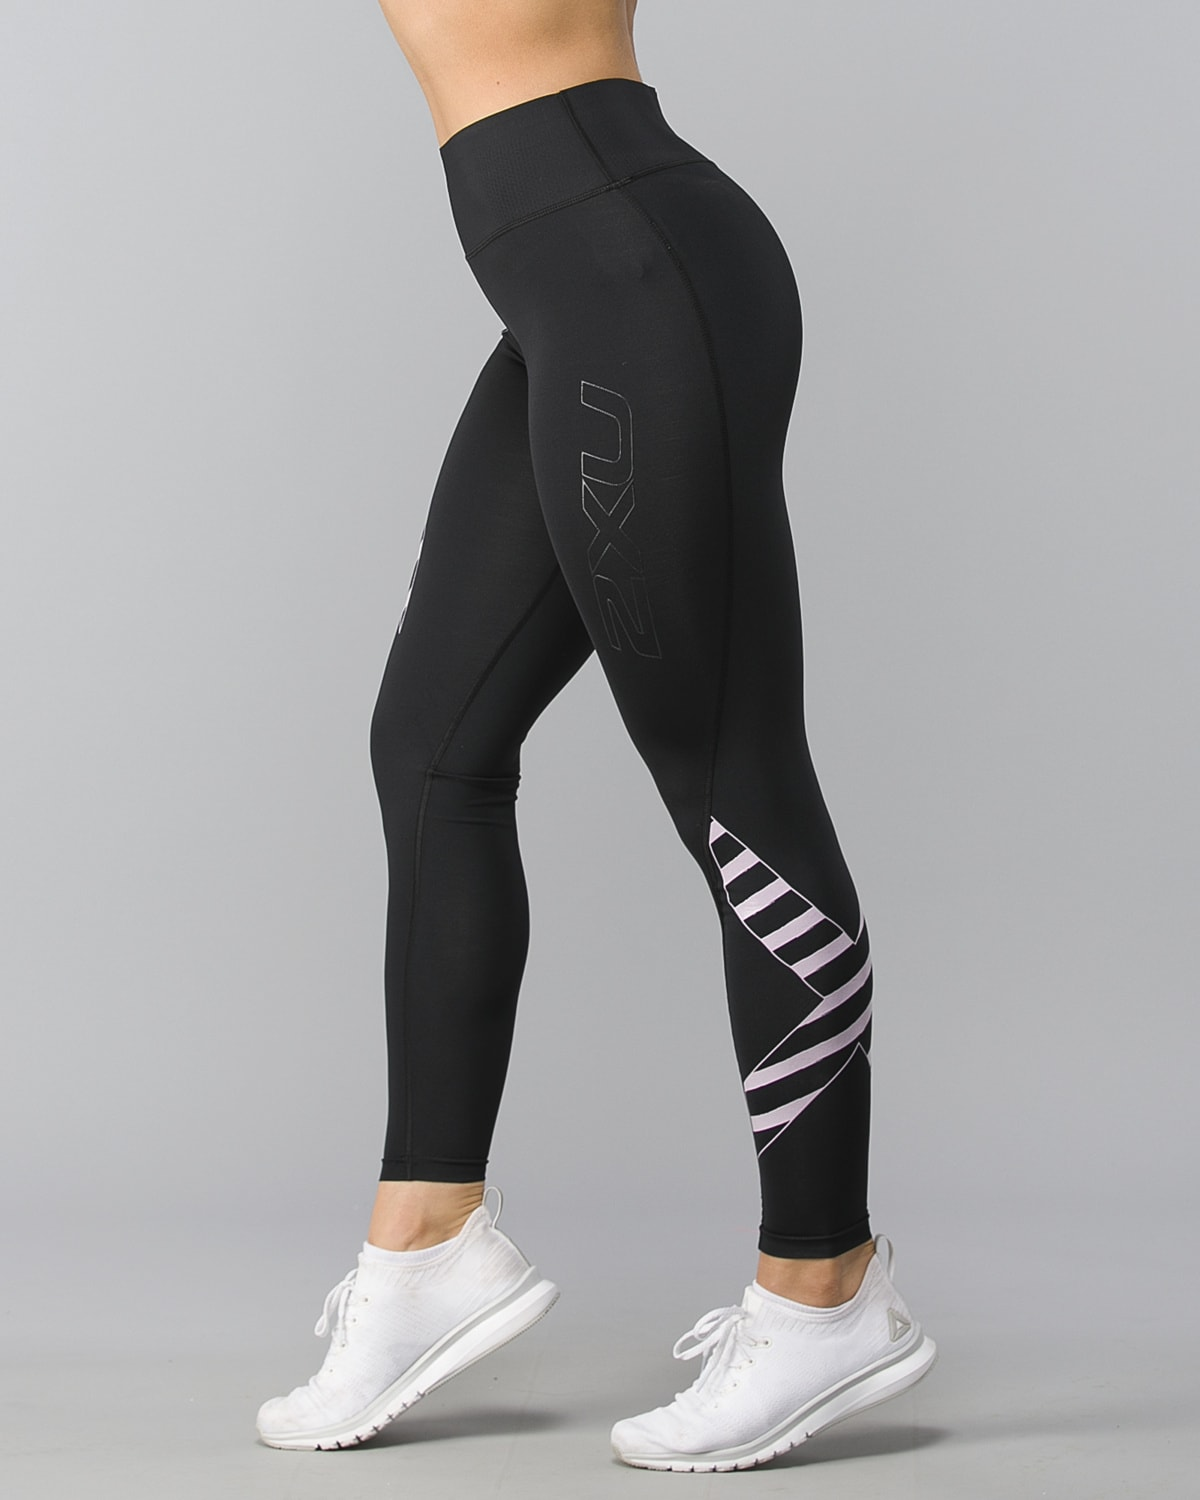 2XU-Bonded-Midrise-Comp-Tights-W–Black-Paint-Stripes-Wndsome-Orchid1